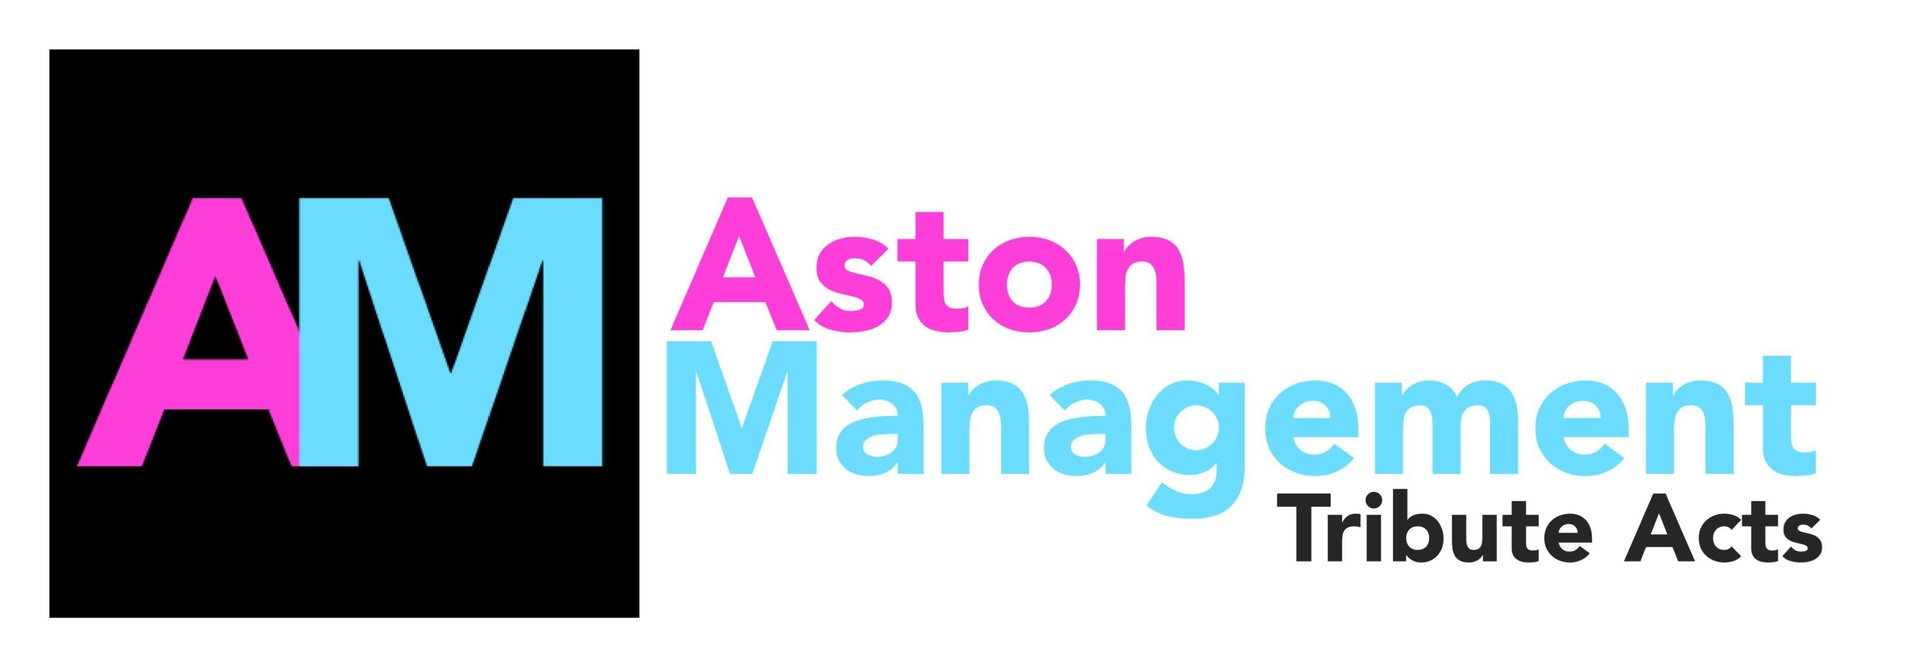 Aston Management logo